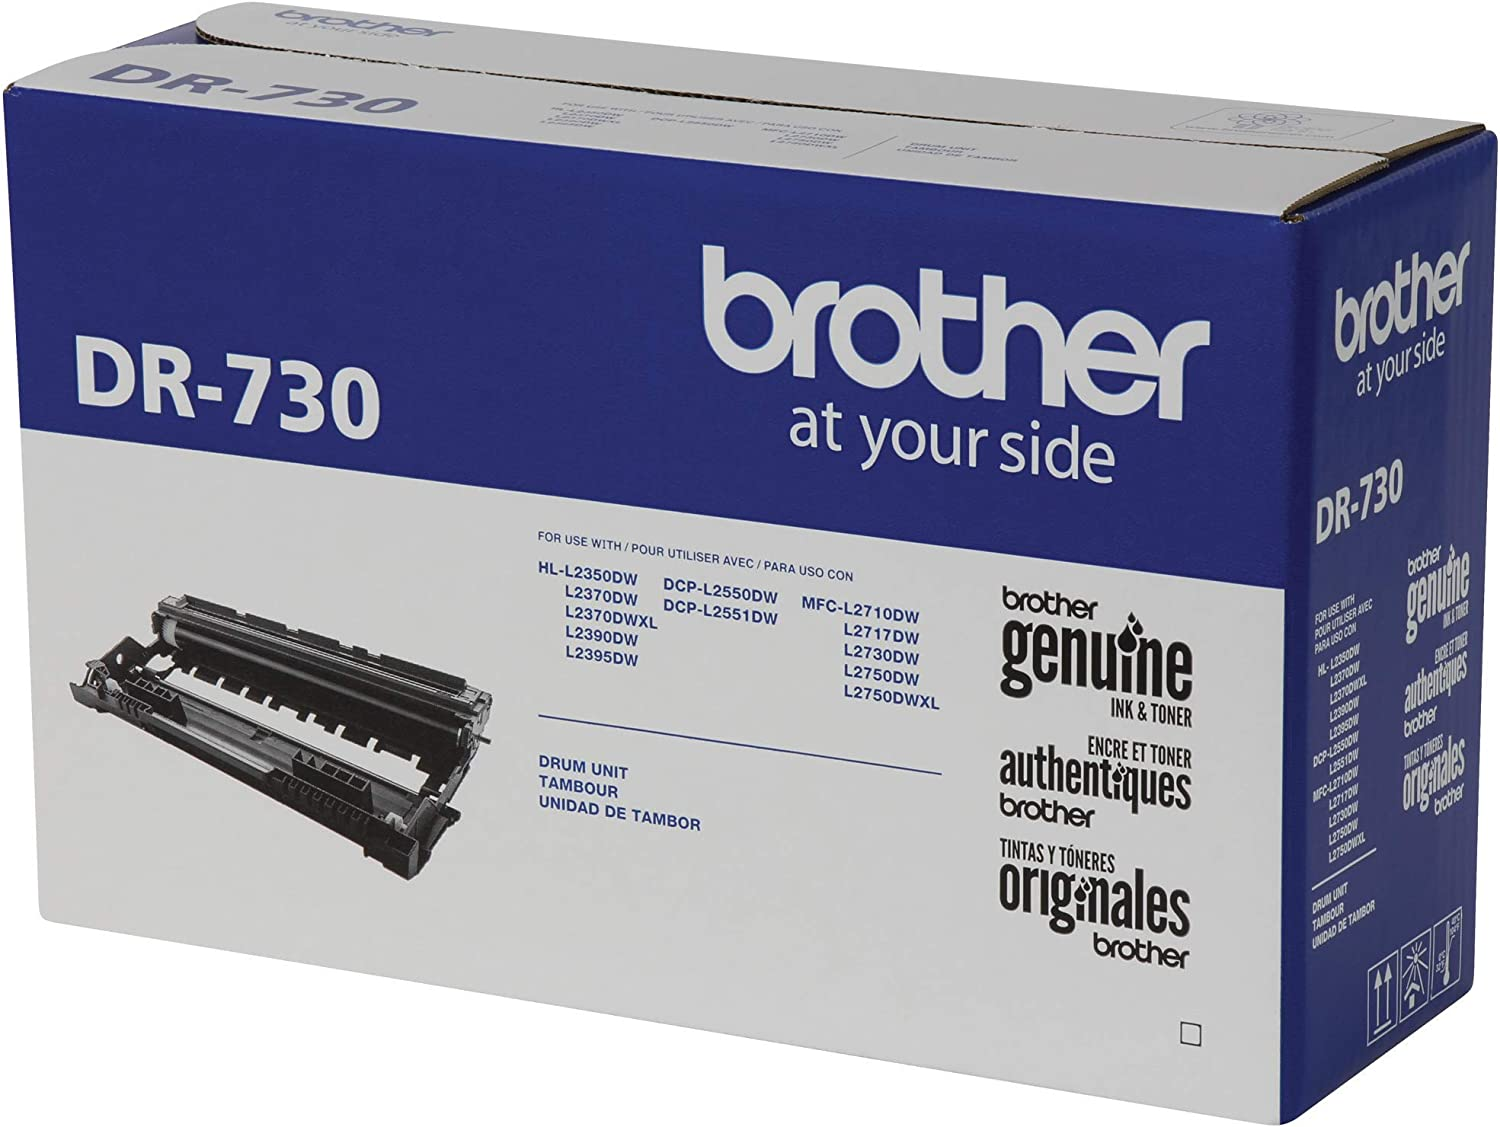 DR730 Brother Genuine Drum Unit Drum unit, NOT toner Yields Up to 12,000 Pages Seamless Integration Black